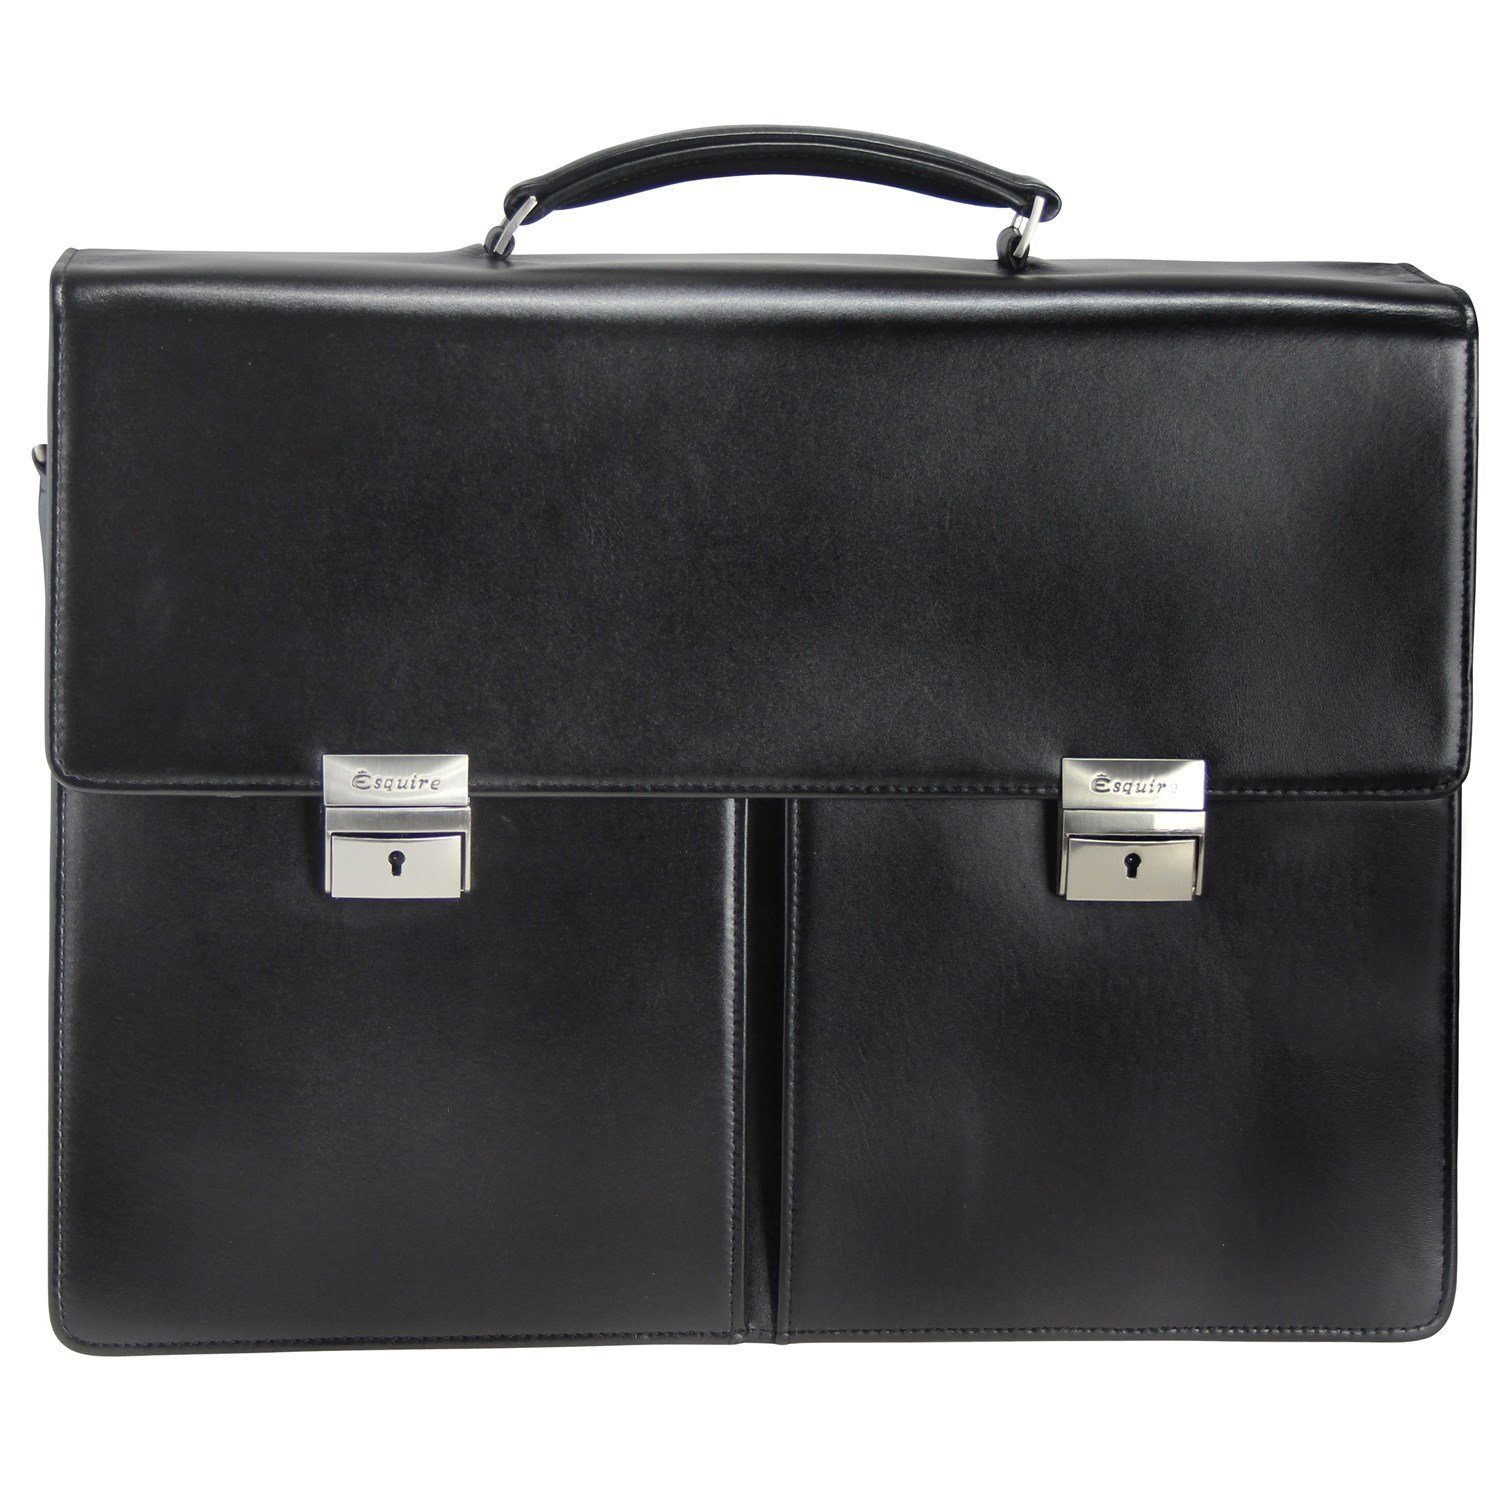 Esquire Esquire Business Aktentasche Leder 41 cm Laptopfach